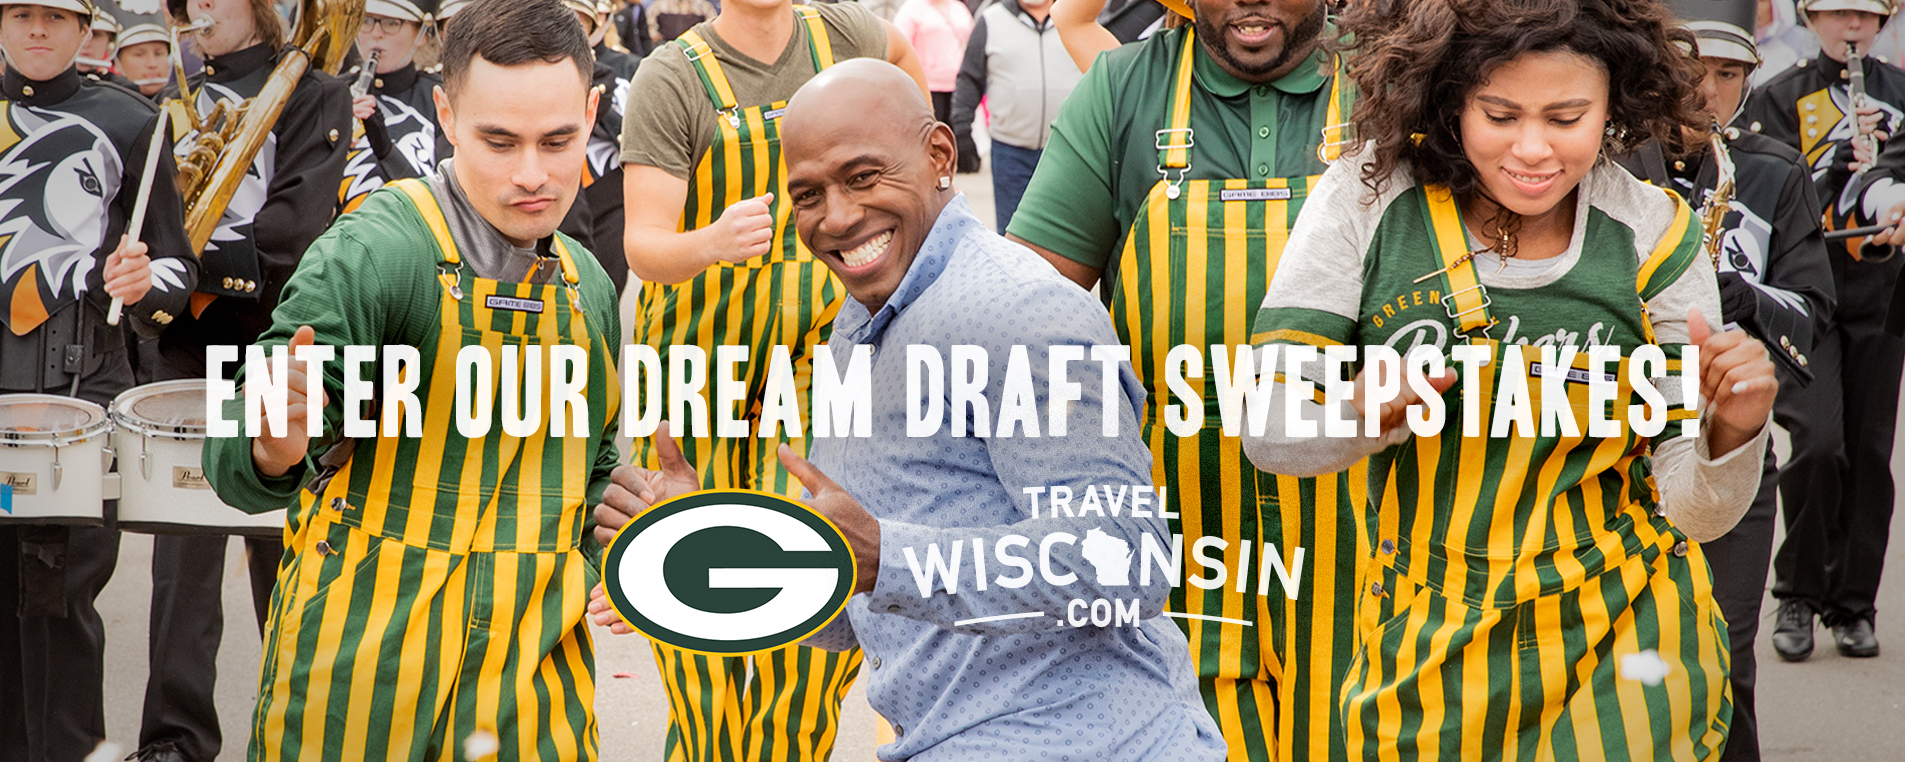 Packers Tickets Dream Draft Sweepstakes | Travel Wisconsin